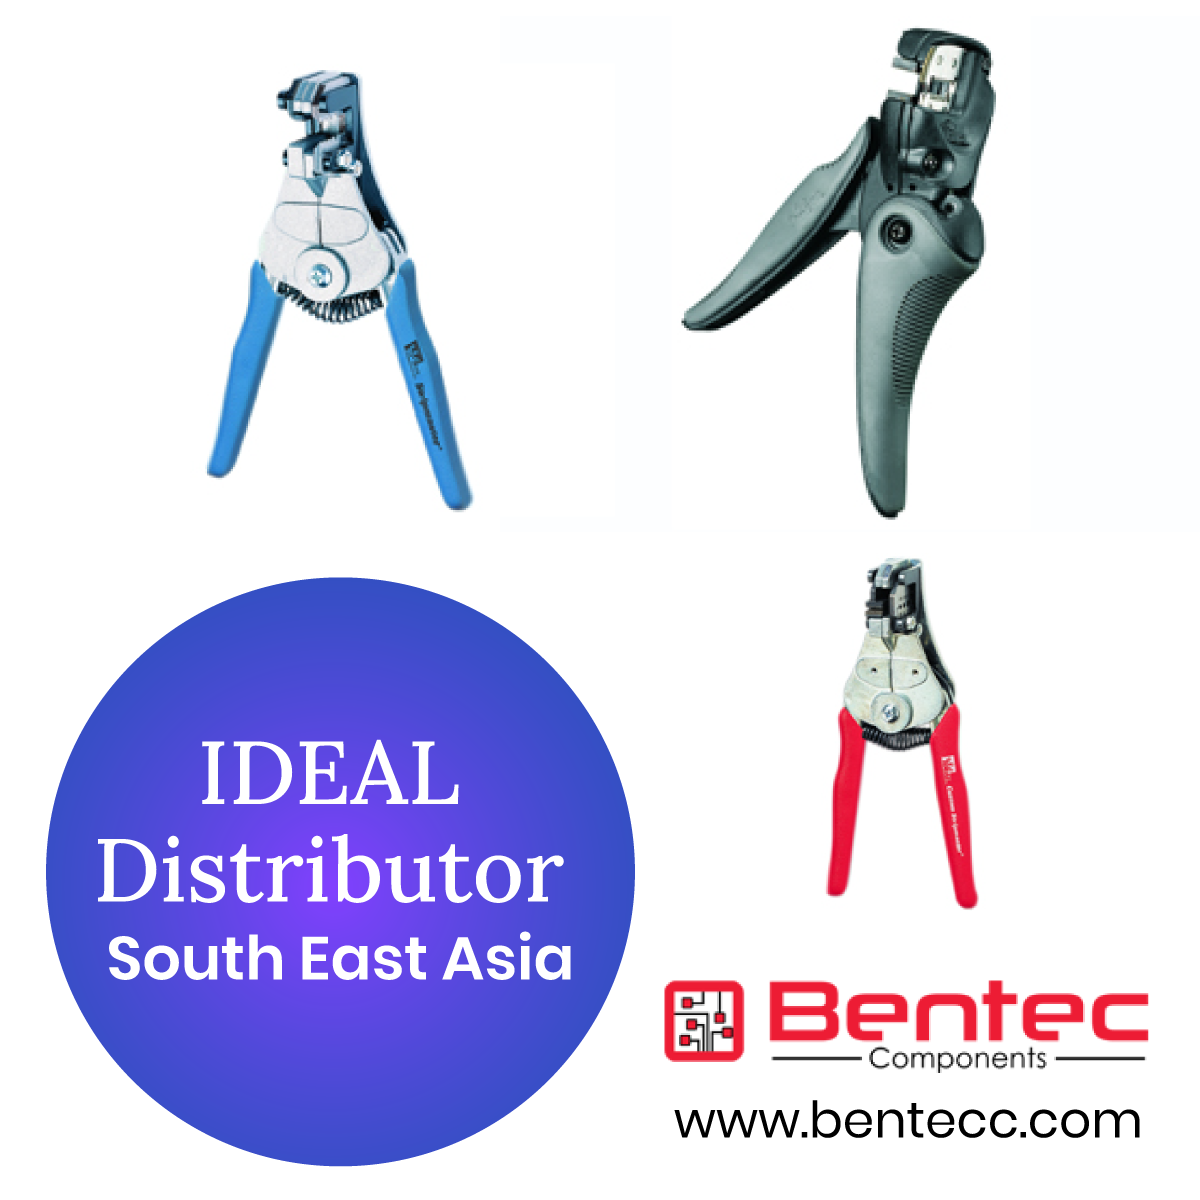 IDEAL Distributor in South East Asia in 2020 Southeast